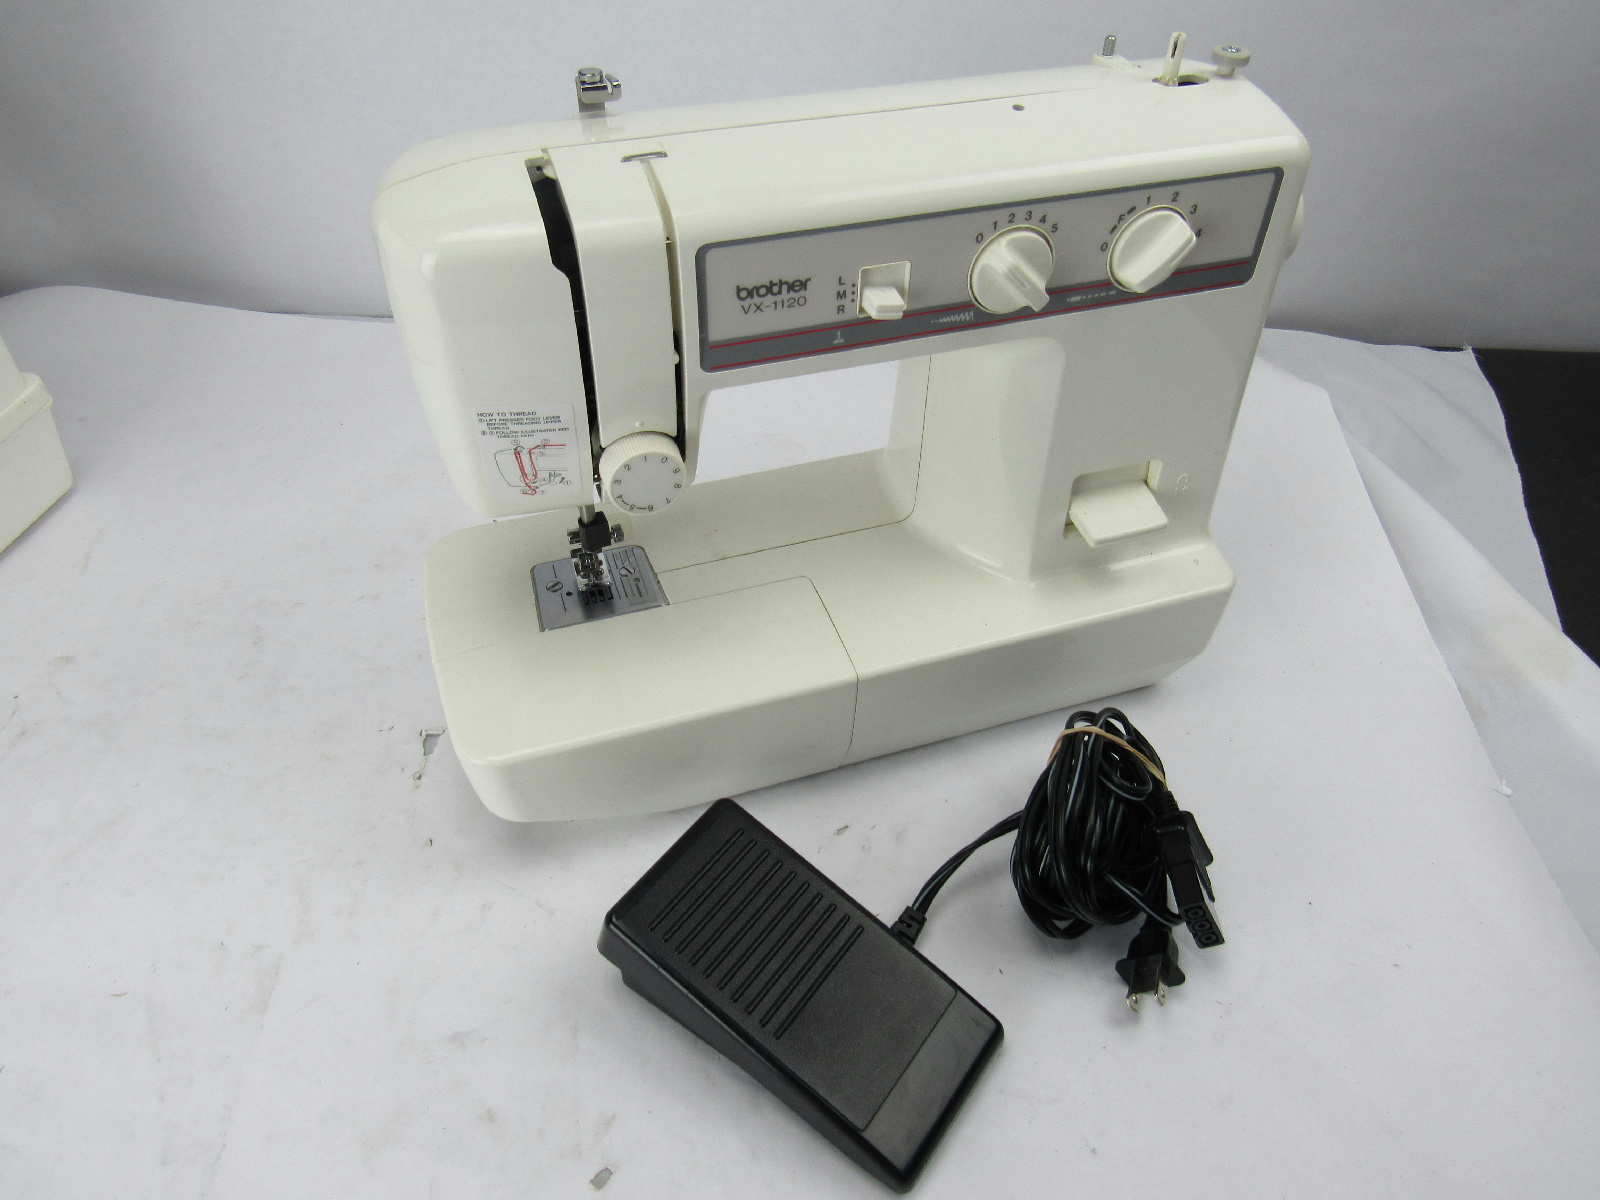 vx 1120 sewing machine review